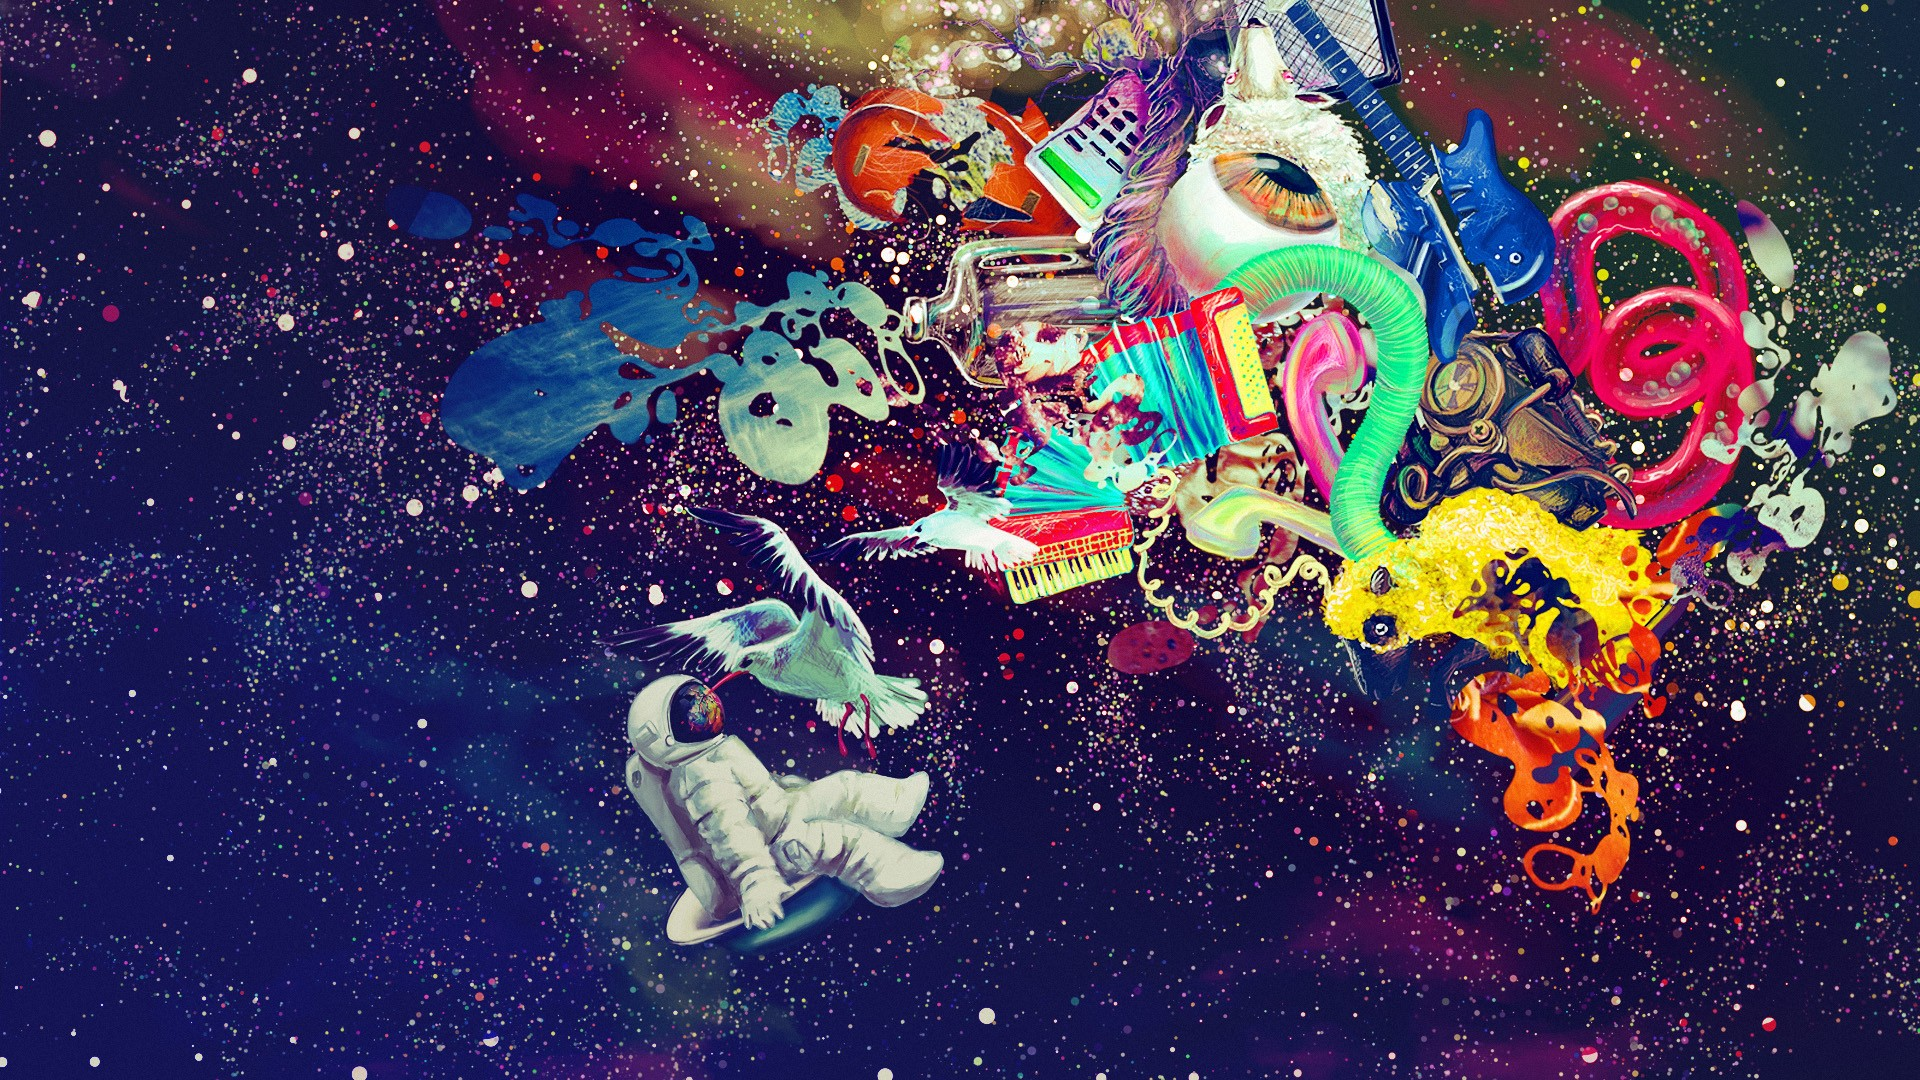 Psychedelic HD Wallpaper | Background Image | 1920x1080 | ID:232476 - Wallpaper Abyss